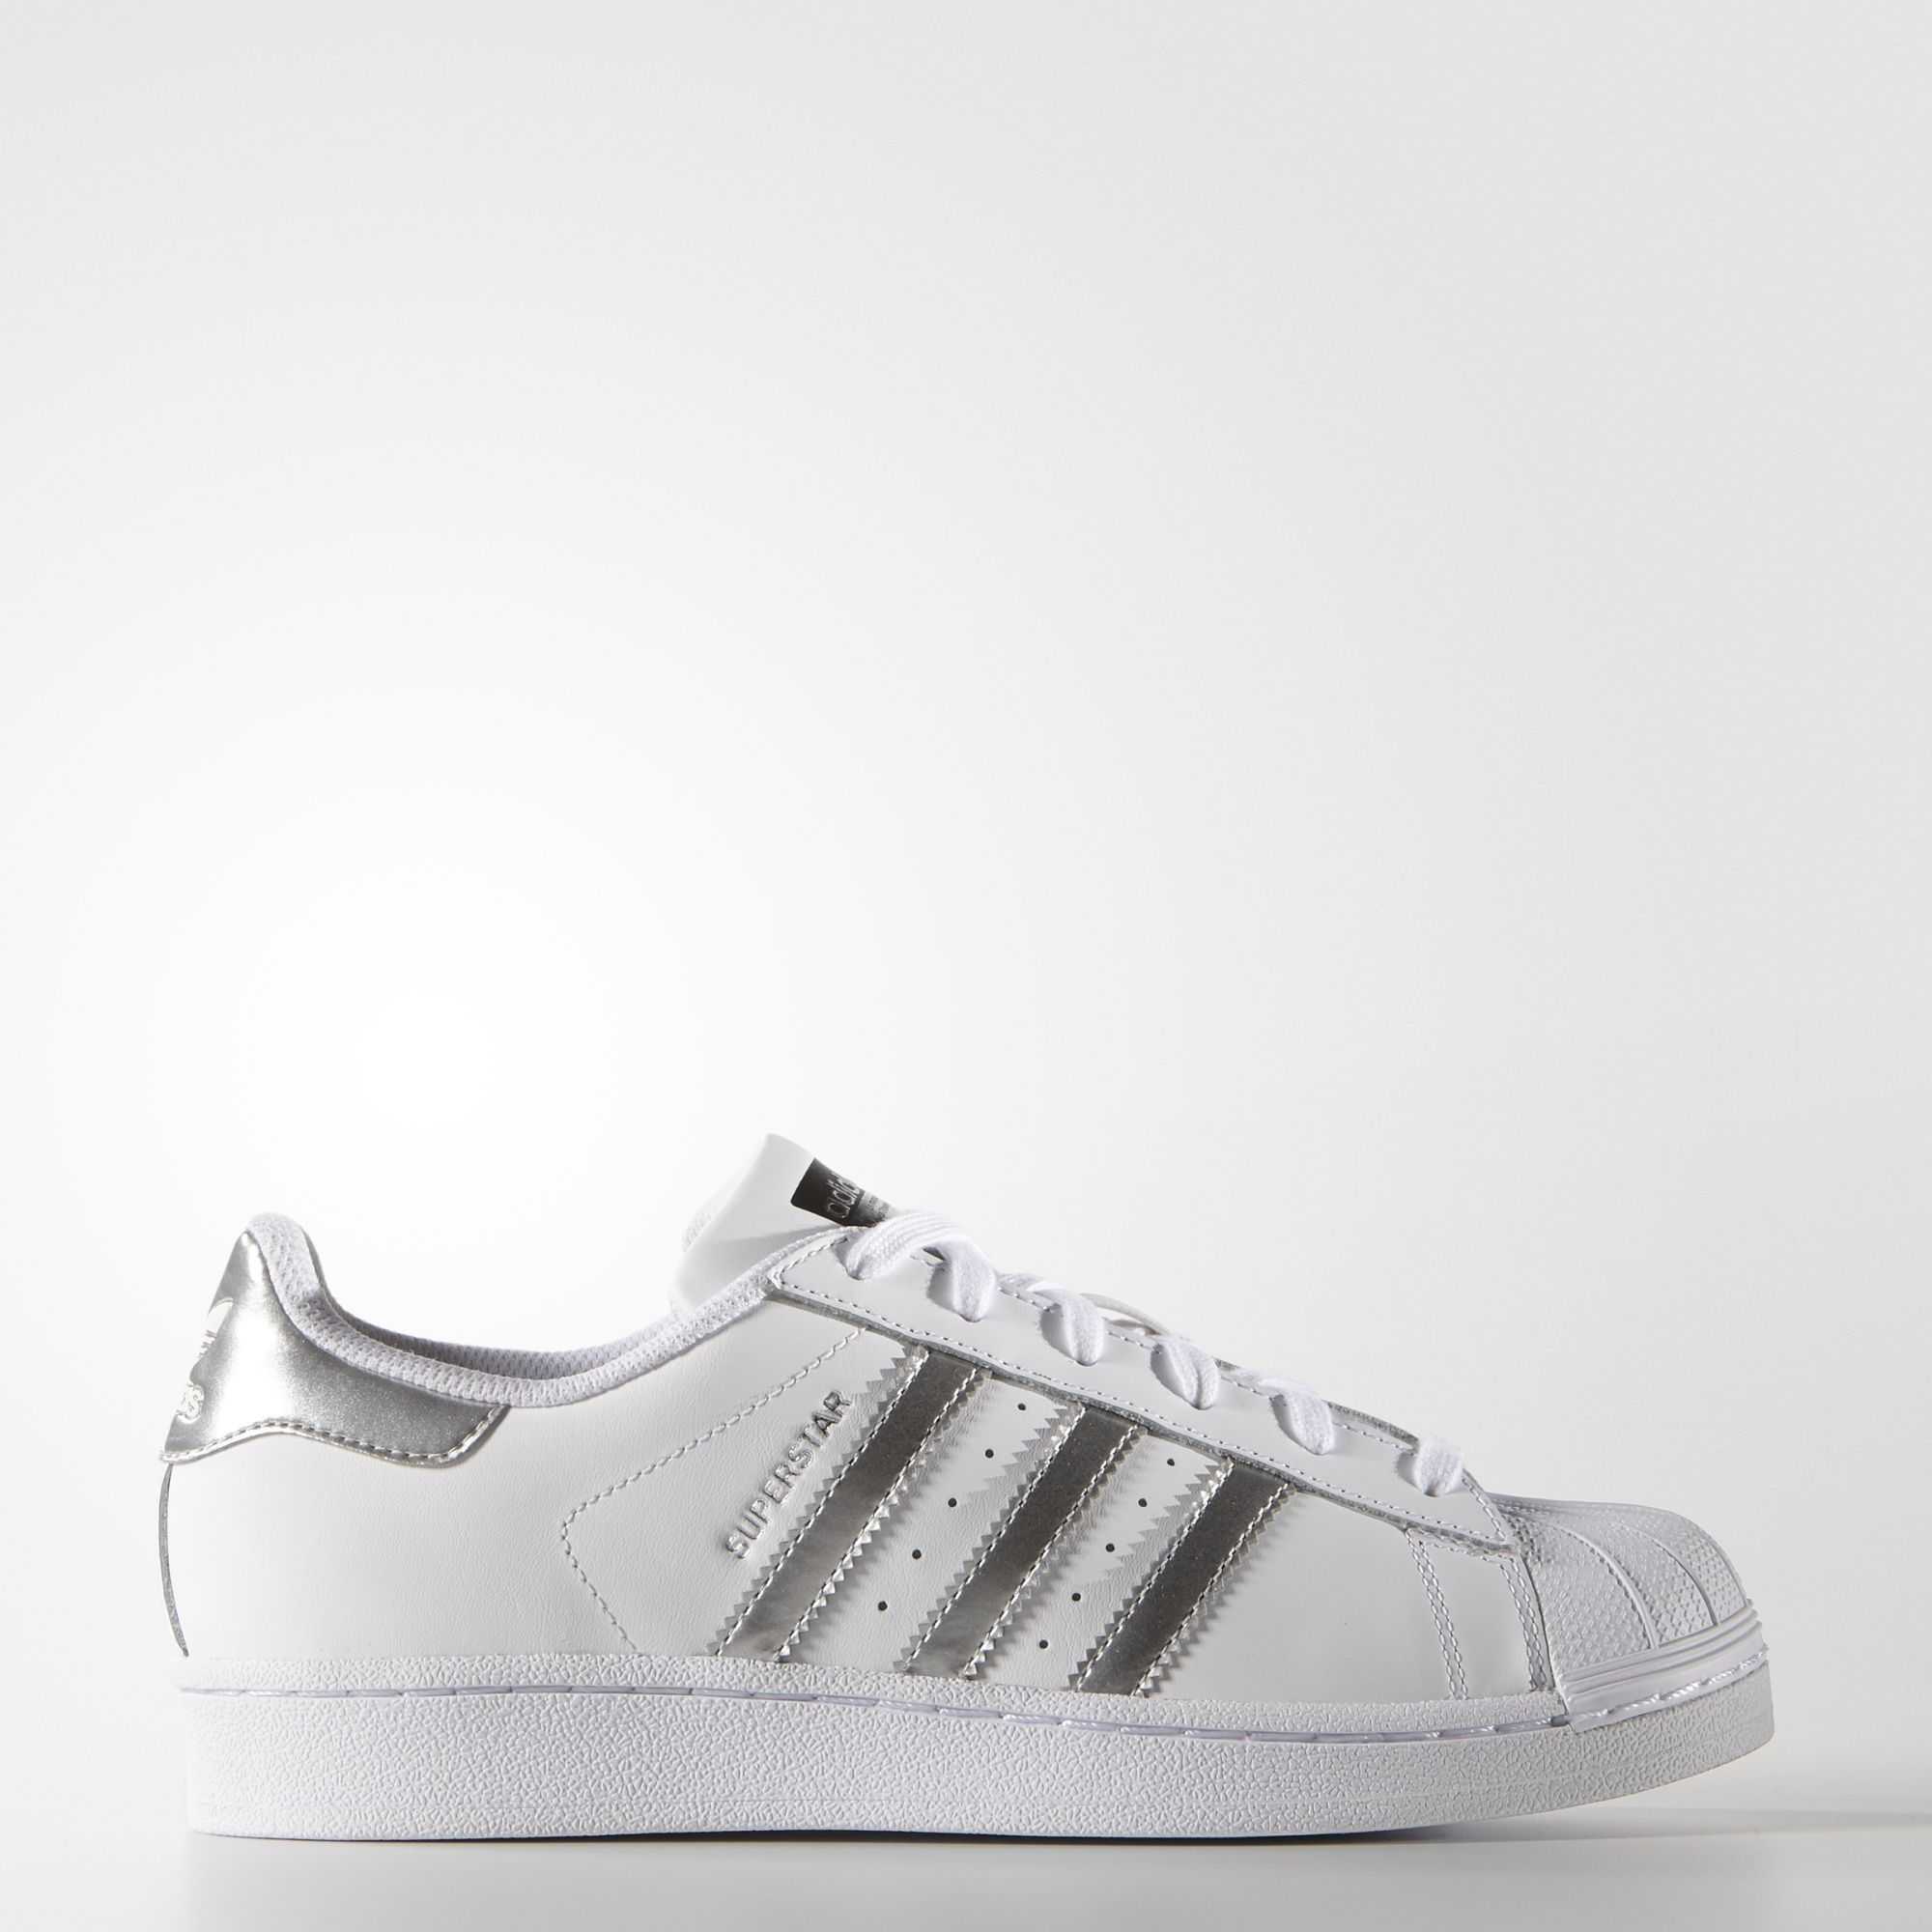 The adidas Superstar shoe stepped onto basketball courts in